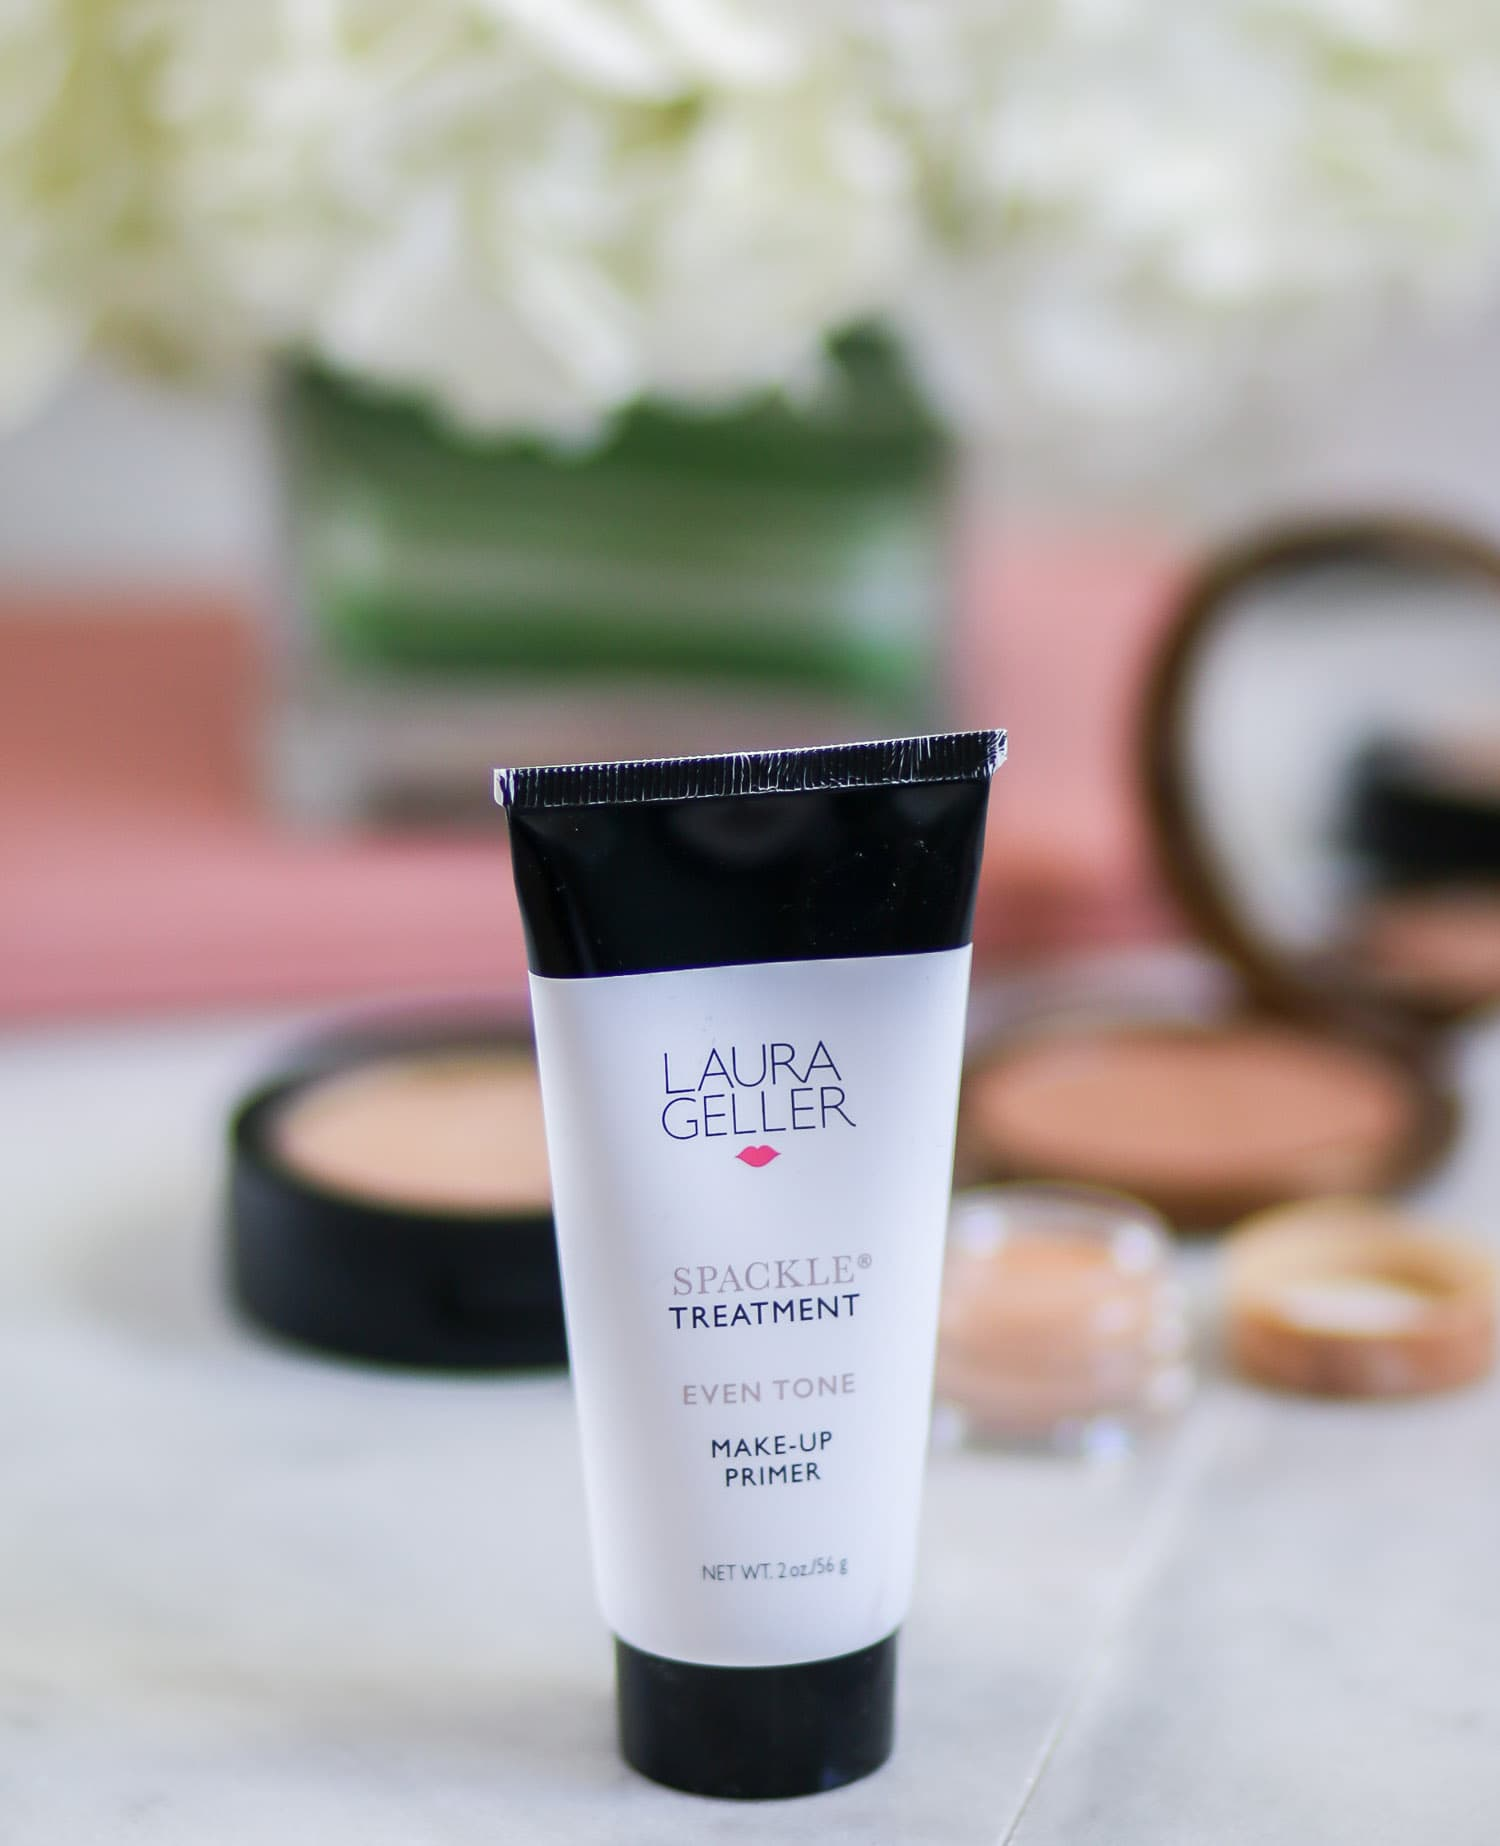 The Laura Geller Spackle Treatment Even Tone Makeup Primer is one of the best primers I've ever used. It has a peachy pink tone that instantly blurs imperfections, and the slightly tacky texture makes liquid or powder foundation last all day long! Plus, this primer has skincare ingredients to gradually even out your skin tone over time. Definitely a must-buy at @ultabeauty . Click through this pin to see a full review of @laurageller makeup from beauty blogger Ashley Brooke Nicholas!